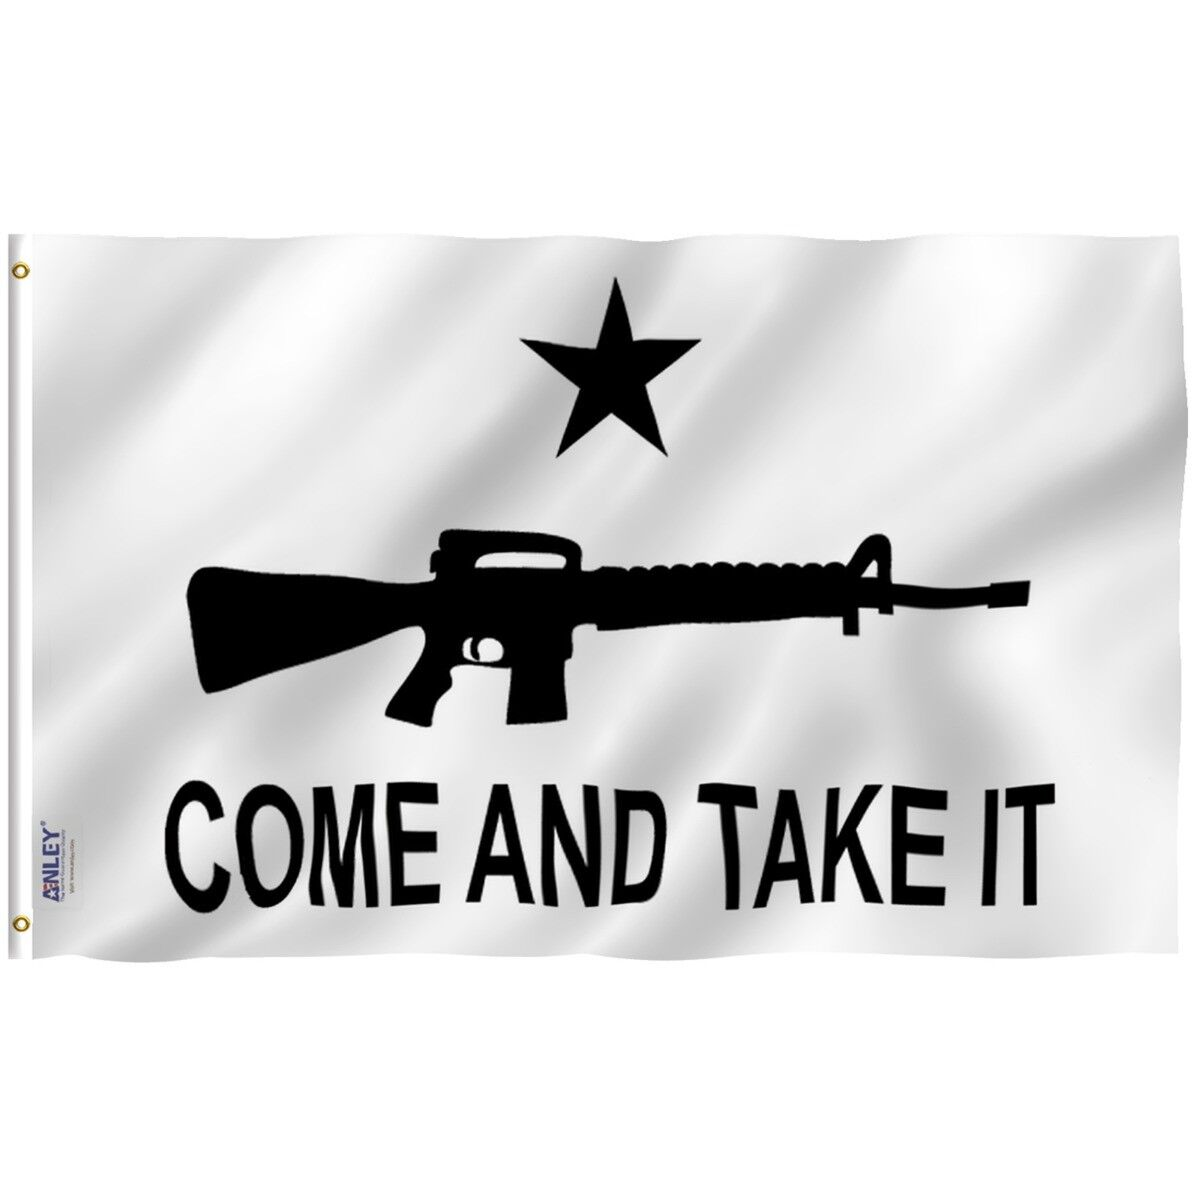 Anley Fly Breeze 3x5 Foot M-4 Gonzales Come and Take It Flag